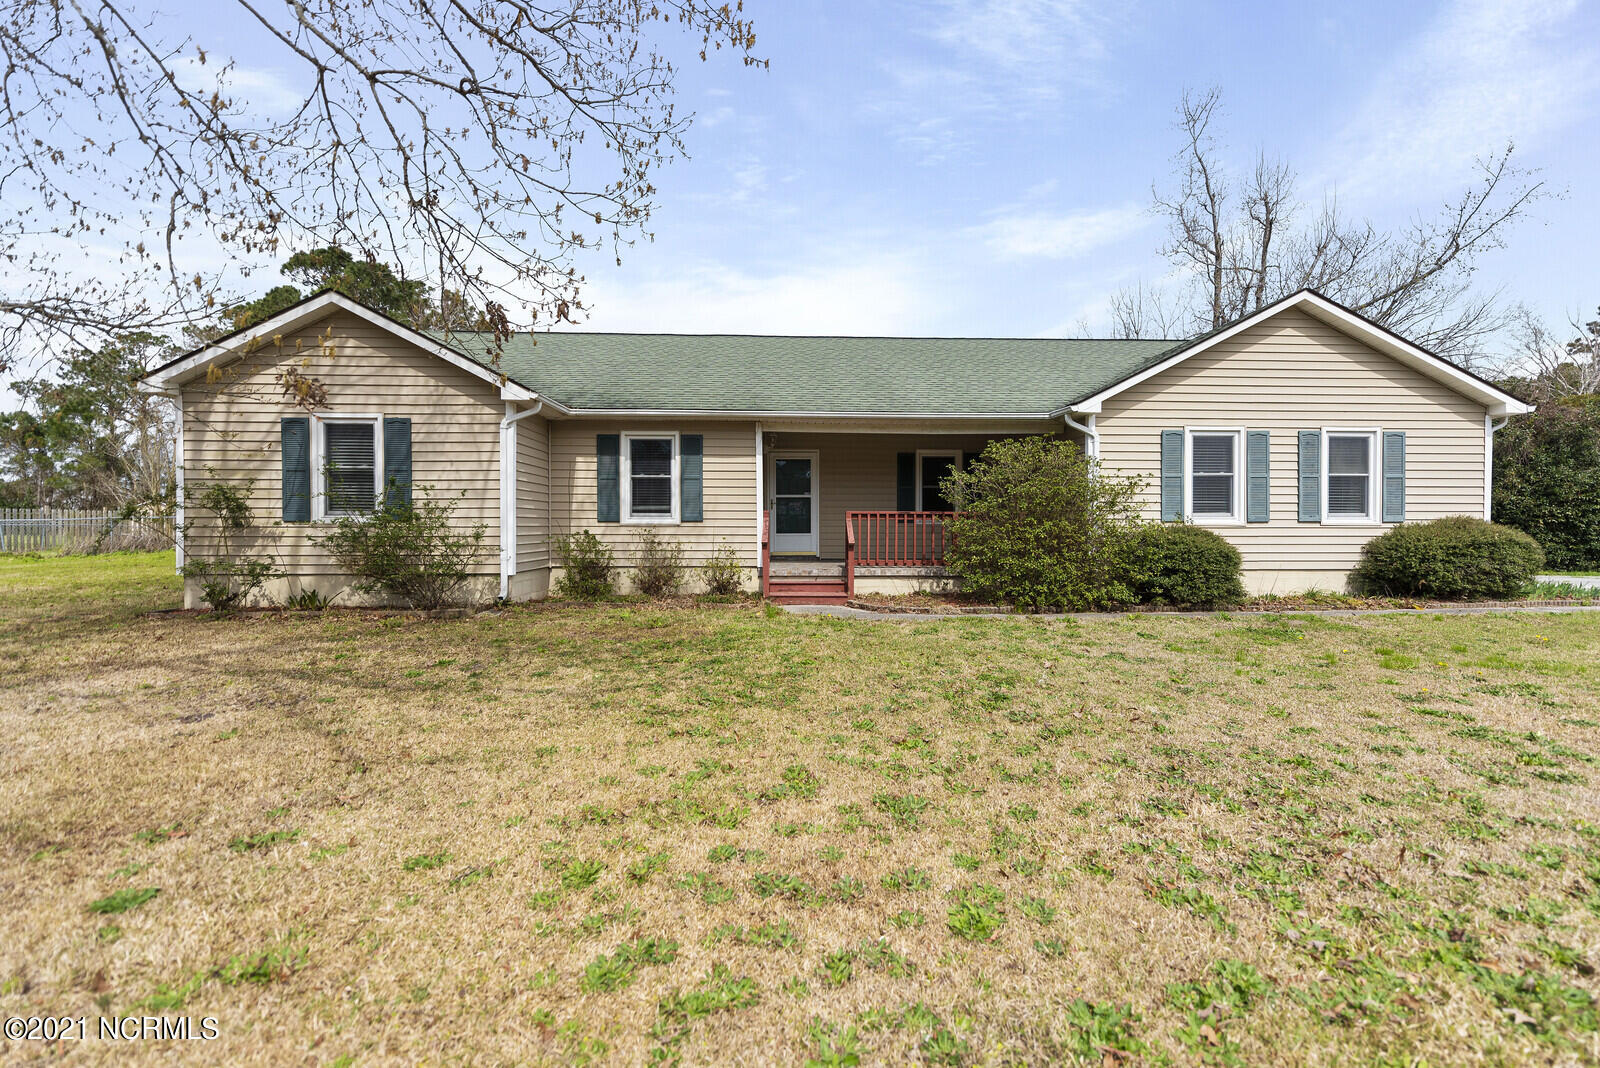 Gorgeous 3 bedroom and huge bonus room home on a large corner lot in the great city of Hubert! Just minutes from all conveniences including Sand Ridge Elementary, Camp Lejuene, Swansboro shopping, and the Crystal Coast Beaches! This home boasts a split floor plan with large living room and spacious kitchen. The fully fenced in back yard is great for privacy and to utilize the the large yard space.